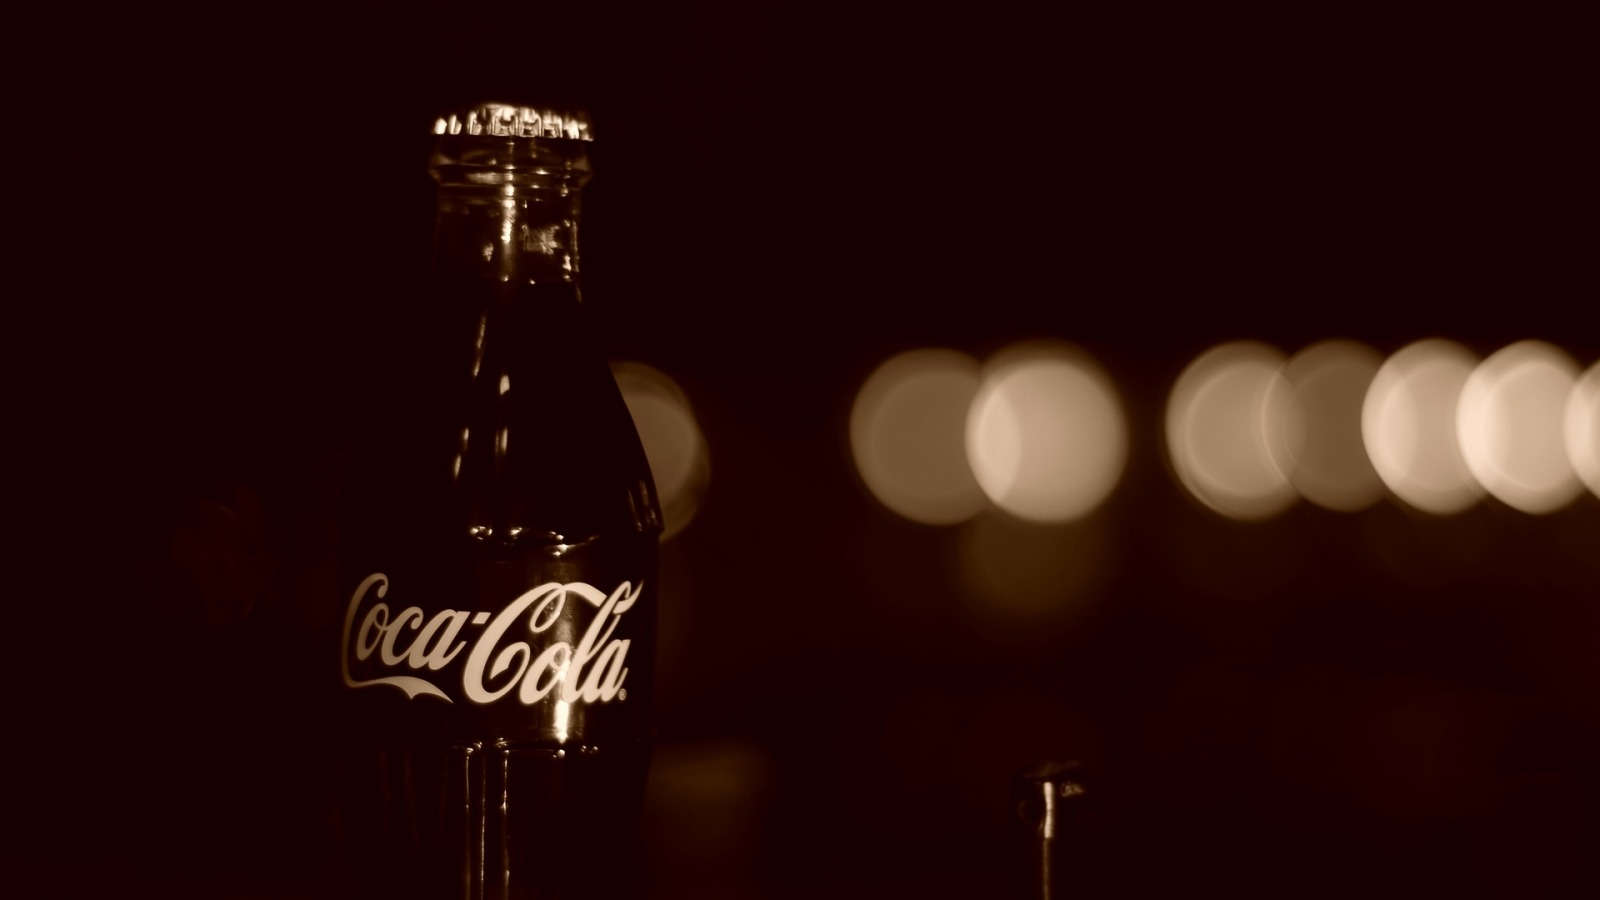 Gorgeous Coca Cola Wallpaper